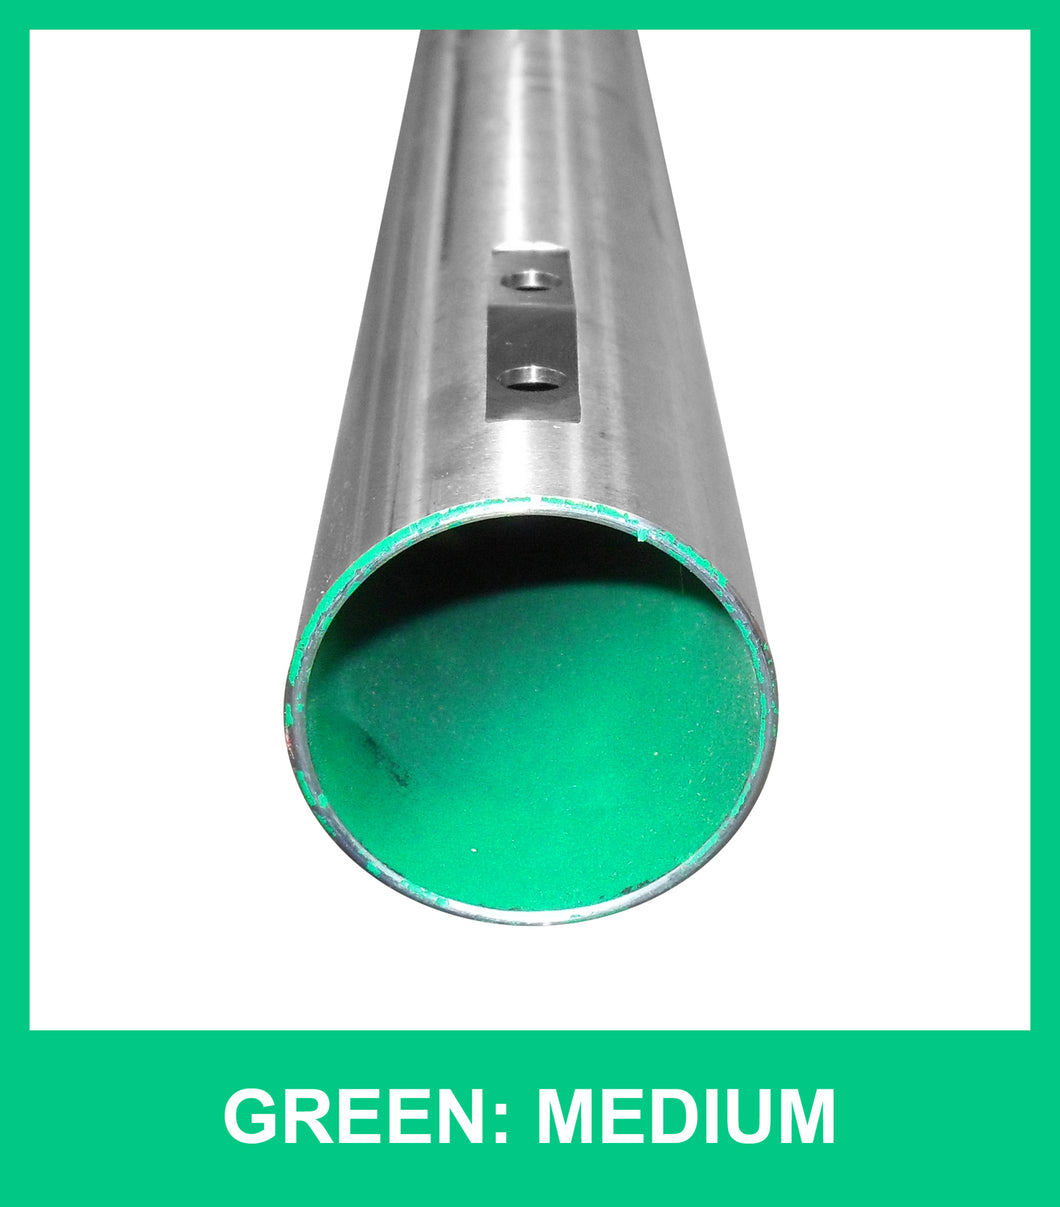 Axle 50mm x 1000mm Medium - GREEN